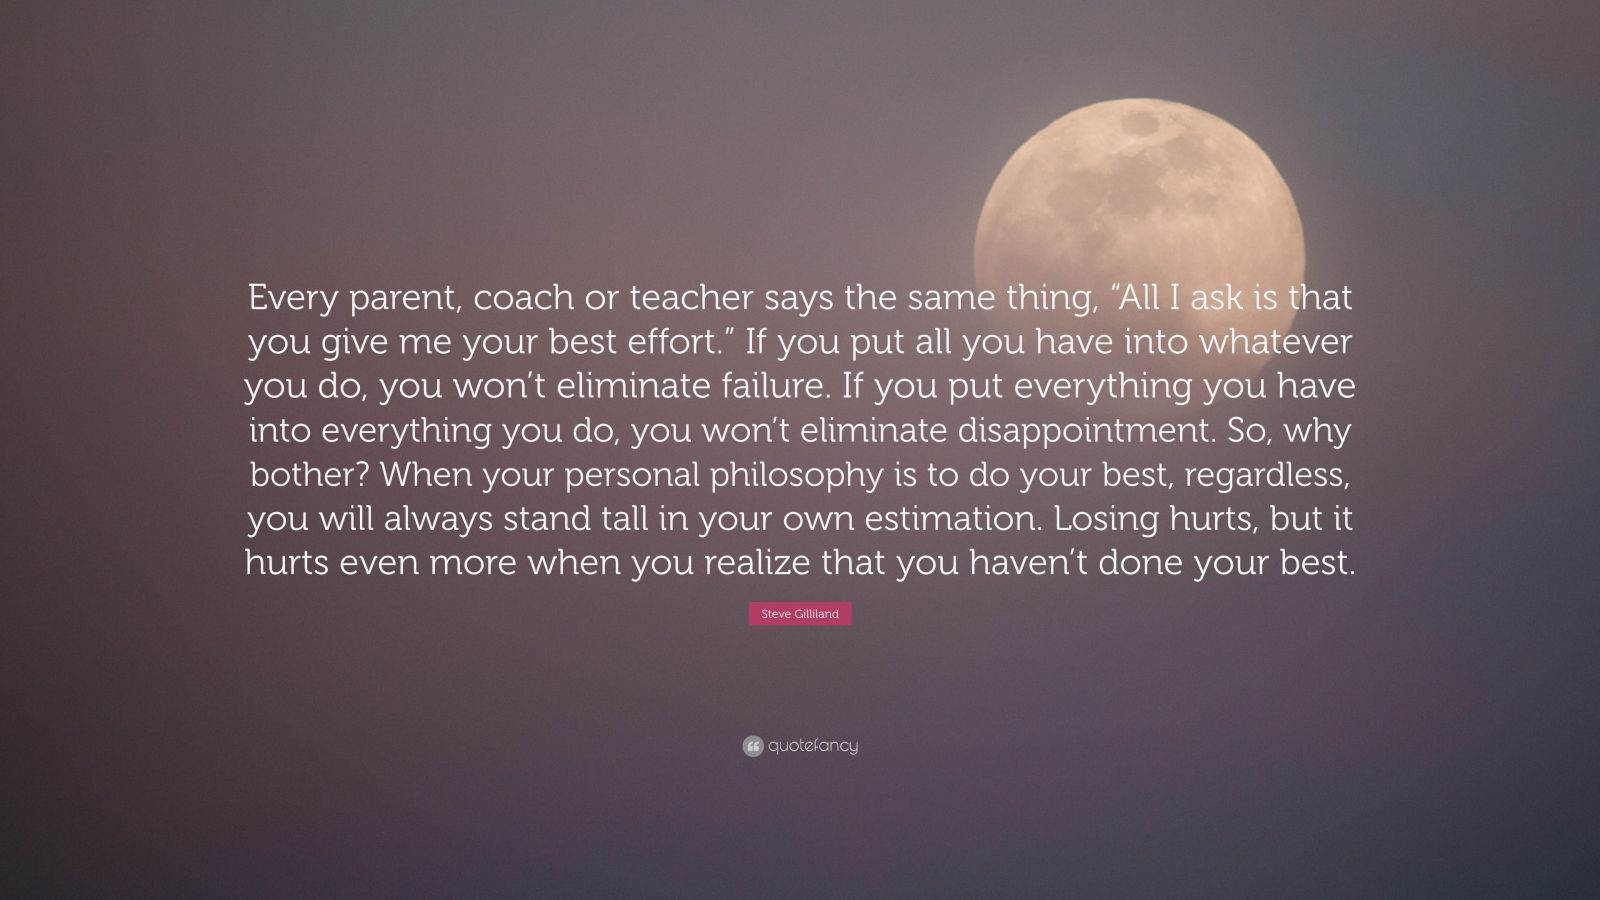 """Steve Gilliland Quote: """"Every parent, coach or teacher says the same thing, """"All I ask is that you give me your best effort."""" If you put all you have into whatever you do, you won't eliminate failure. If you put everything you have into everything you do, you won't eliminate disappointment. So, why bother? When your personal philosophy is to do your best, regardless, you will always stand tall in your own estimation. Losing hurts, but it hurts even more when you realize that you haven't done your best."""""""